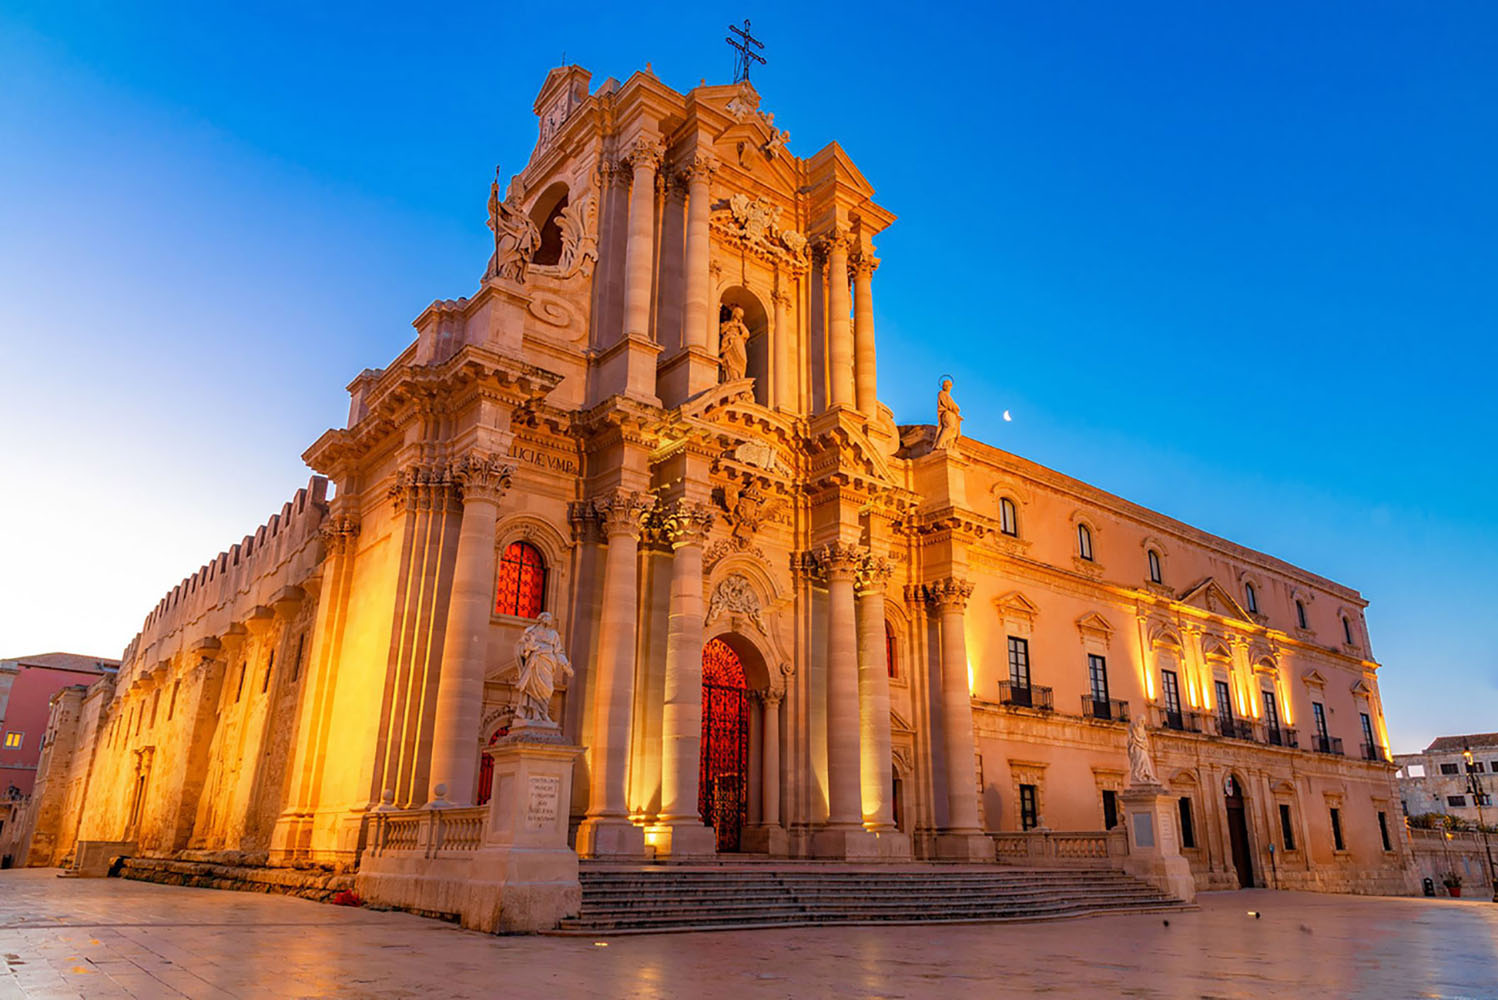 Night view of the Cathedral of Syracuse, Duomo di Siracusa